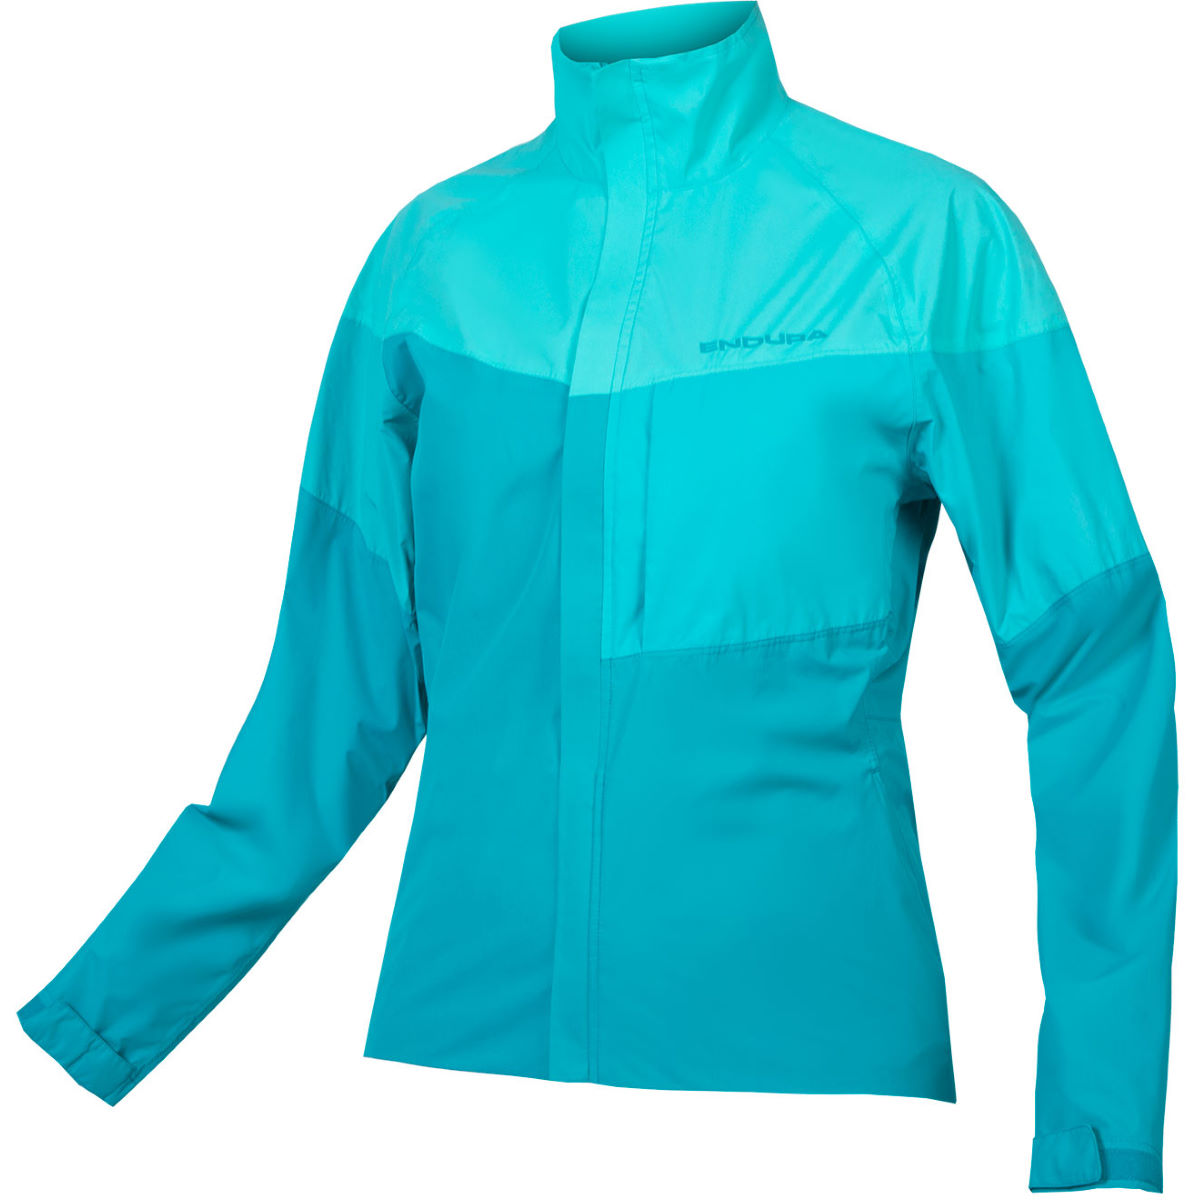 Endura Endura Womens Urban Luminite Waterproof Jacket II   Jackets